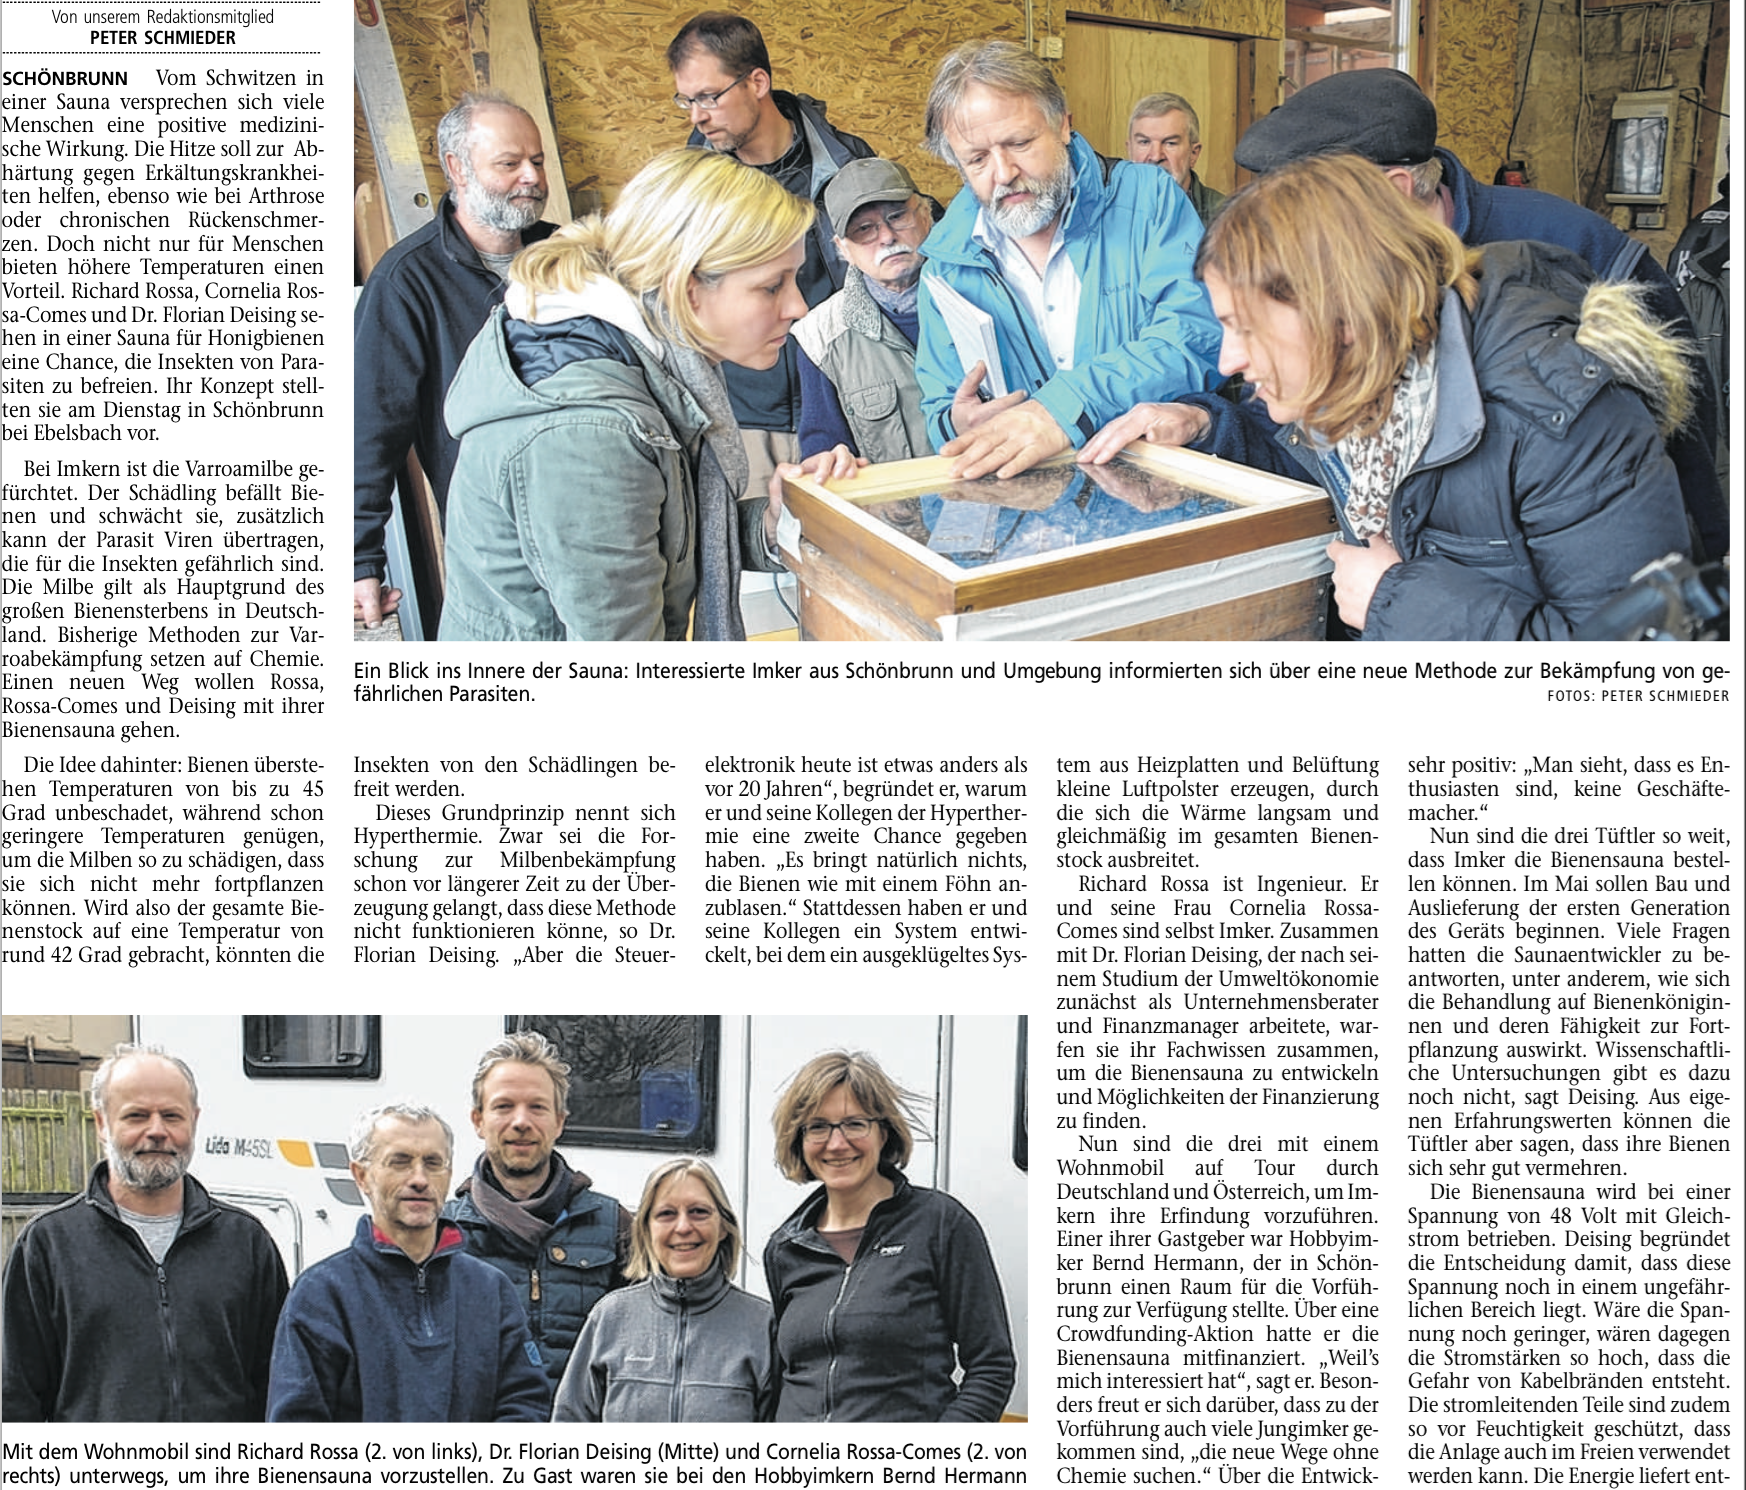 Hassfurter Tageblatt vom 1. April 2015